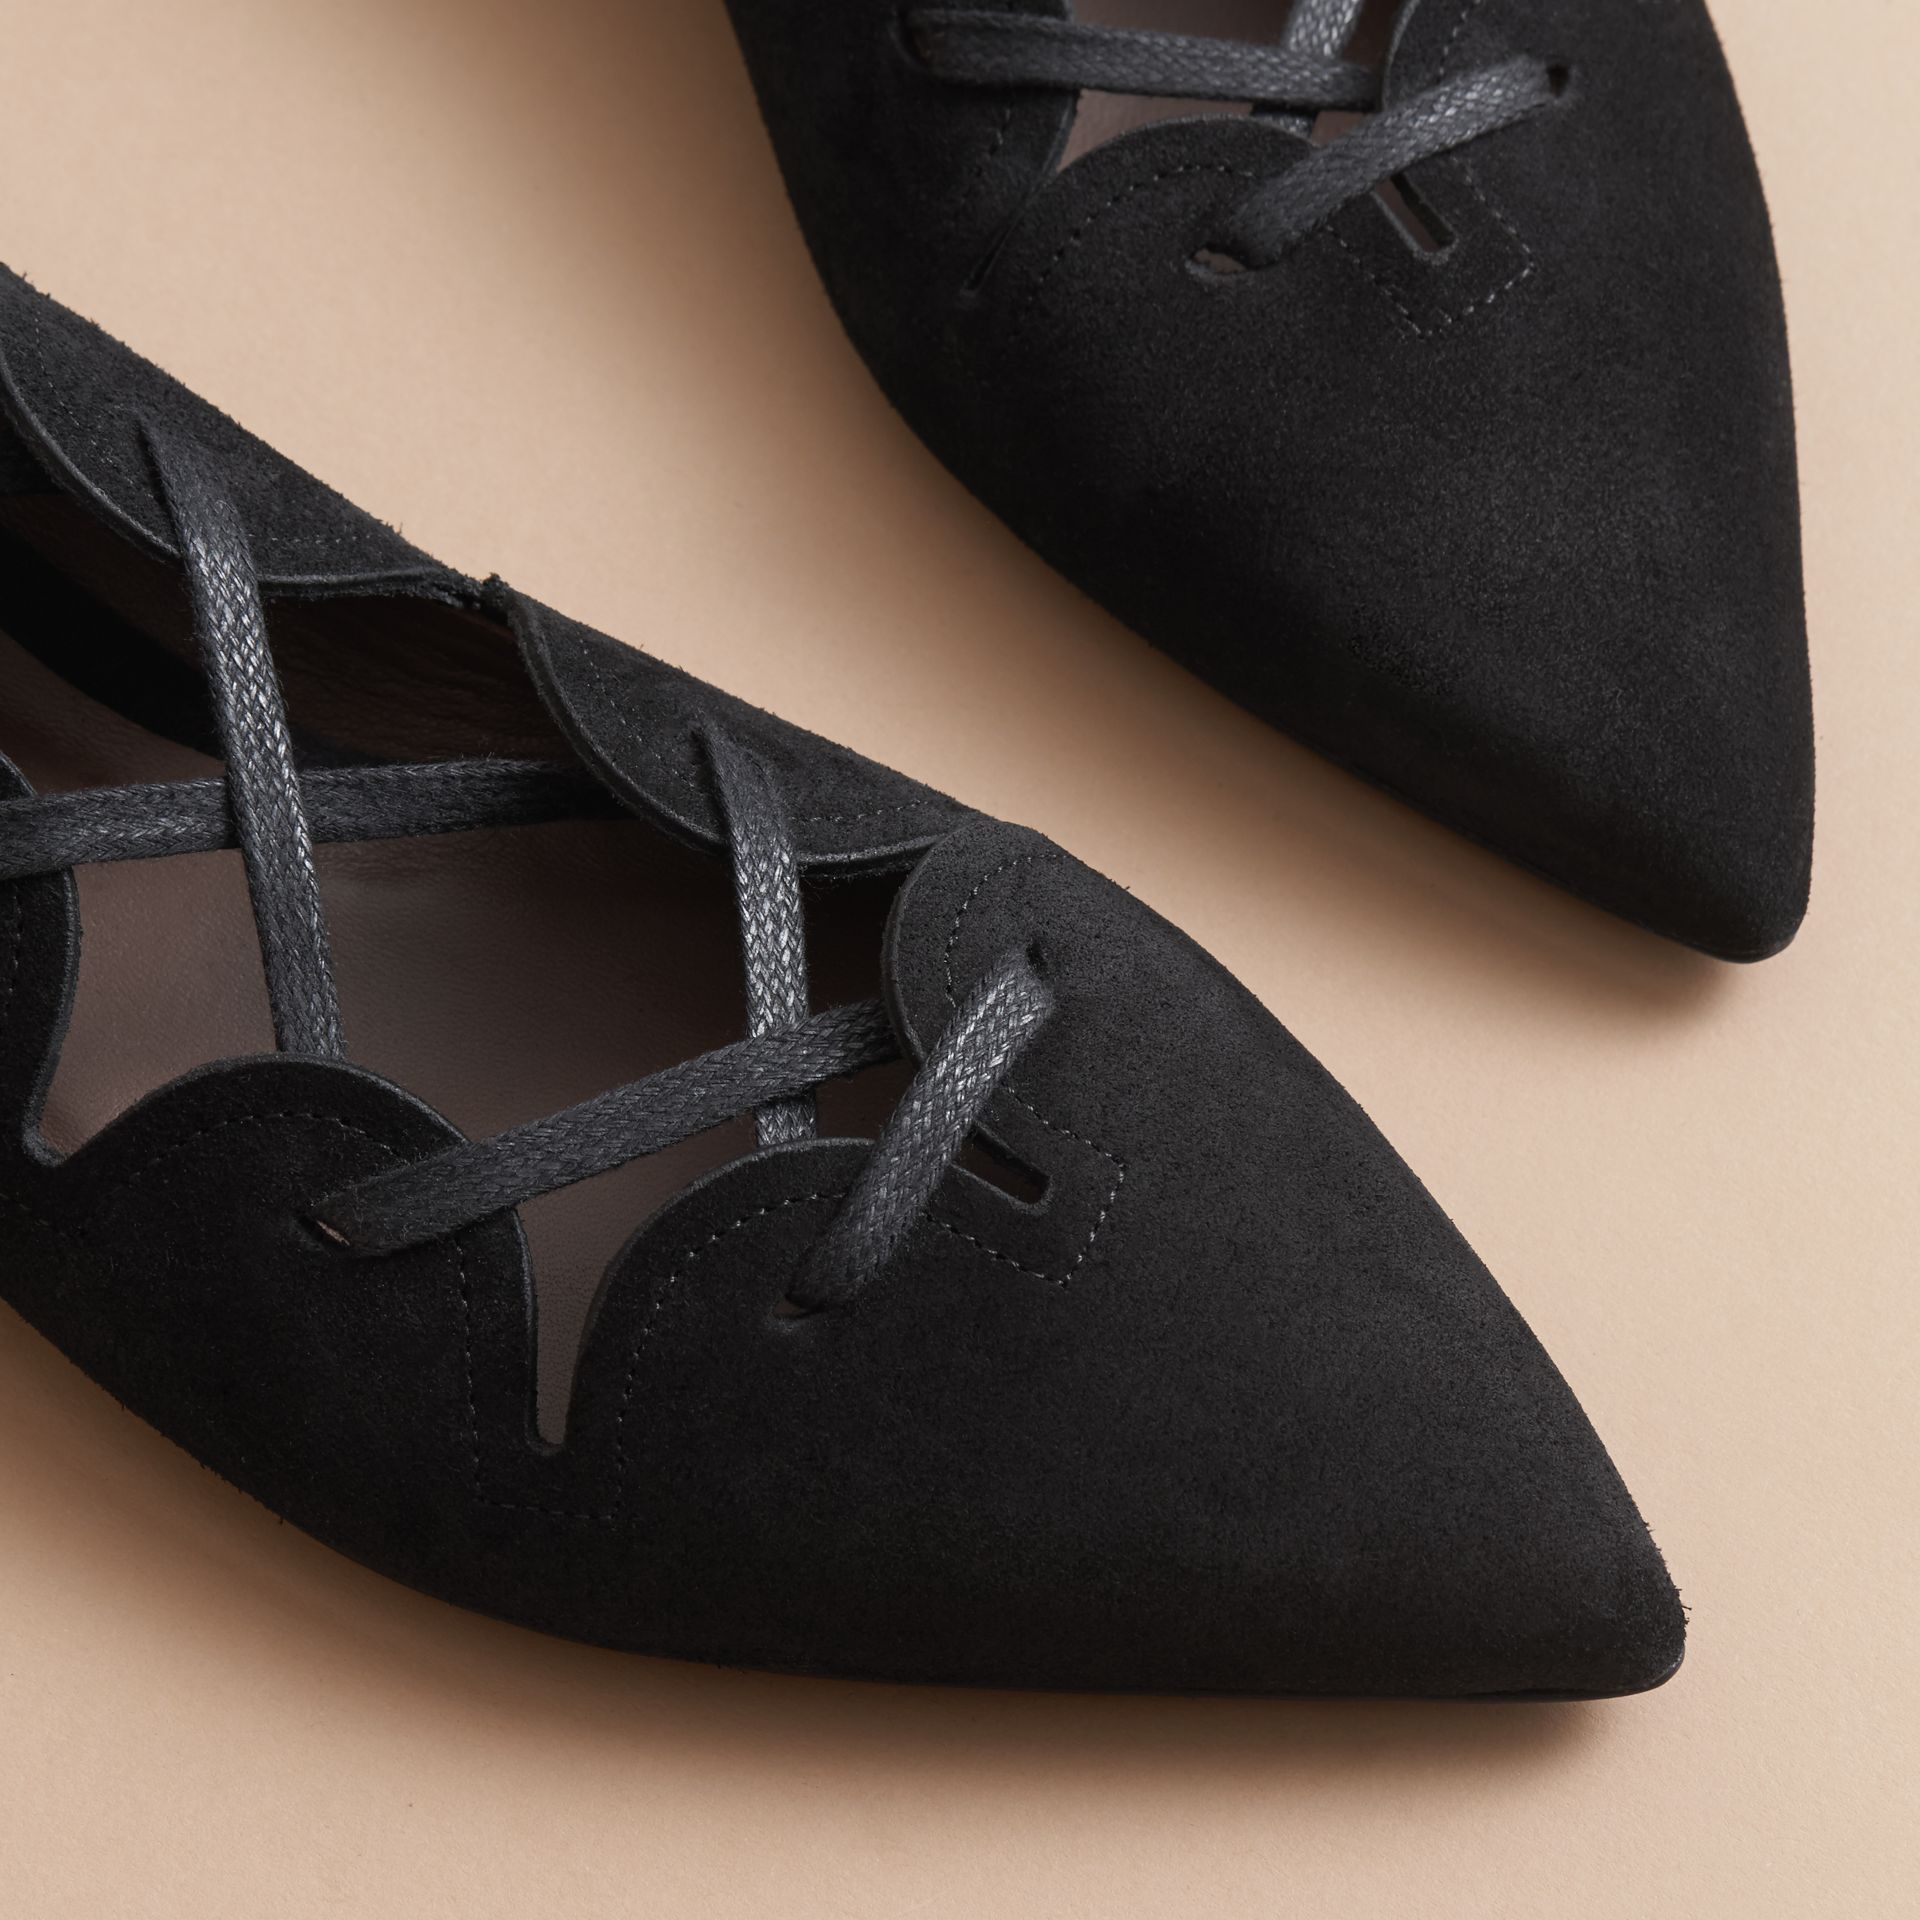 Scalloped Suede Lace-up Ballerinas in Black - Women | Burberry - gallery image 4